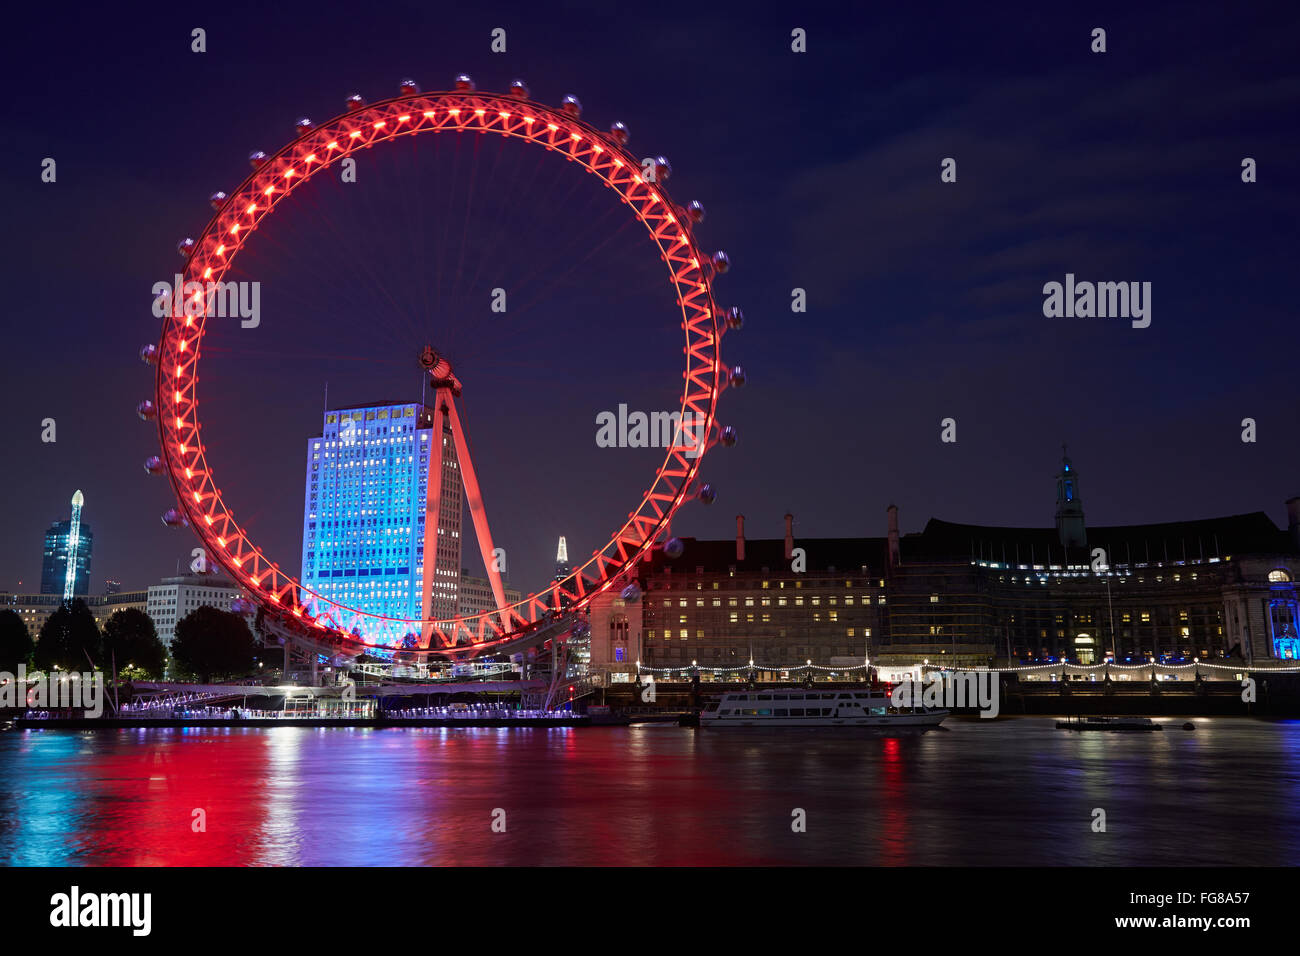 London eye, ferris wheel, illuminated in red in the night, reflection in Thames river in London - Stock Image